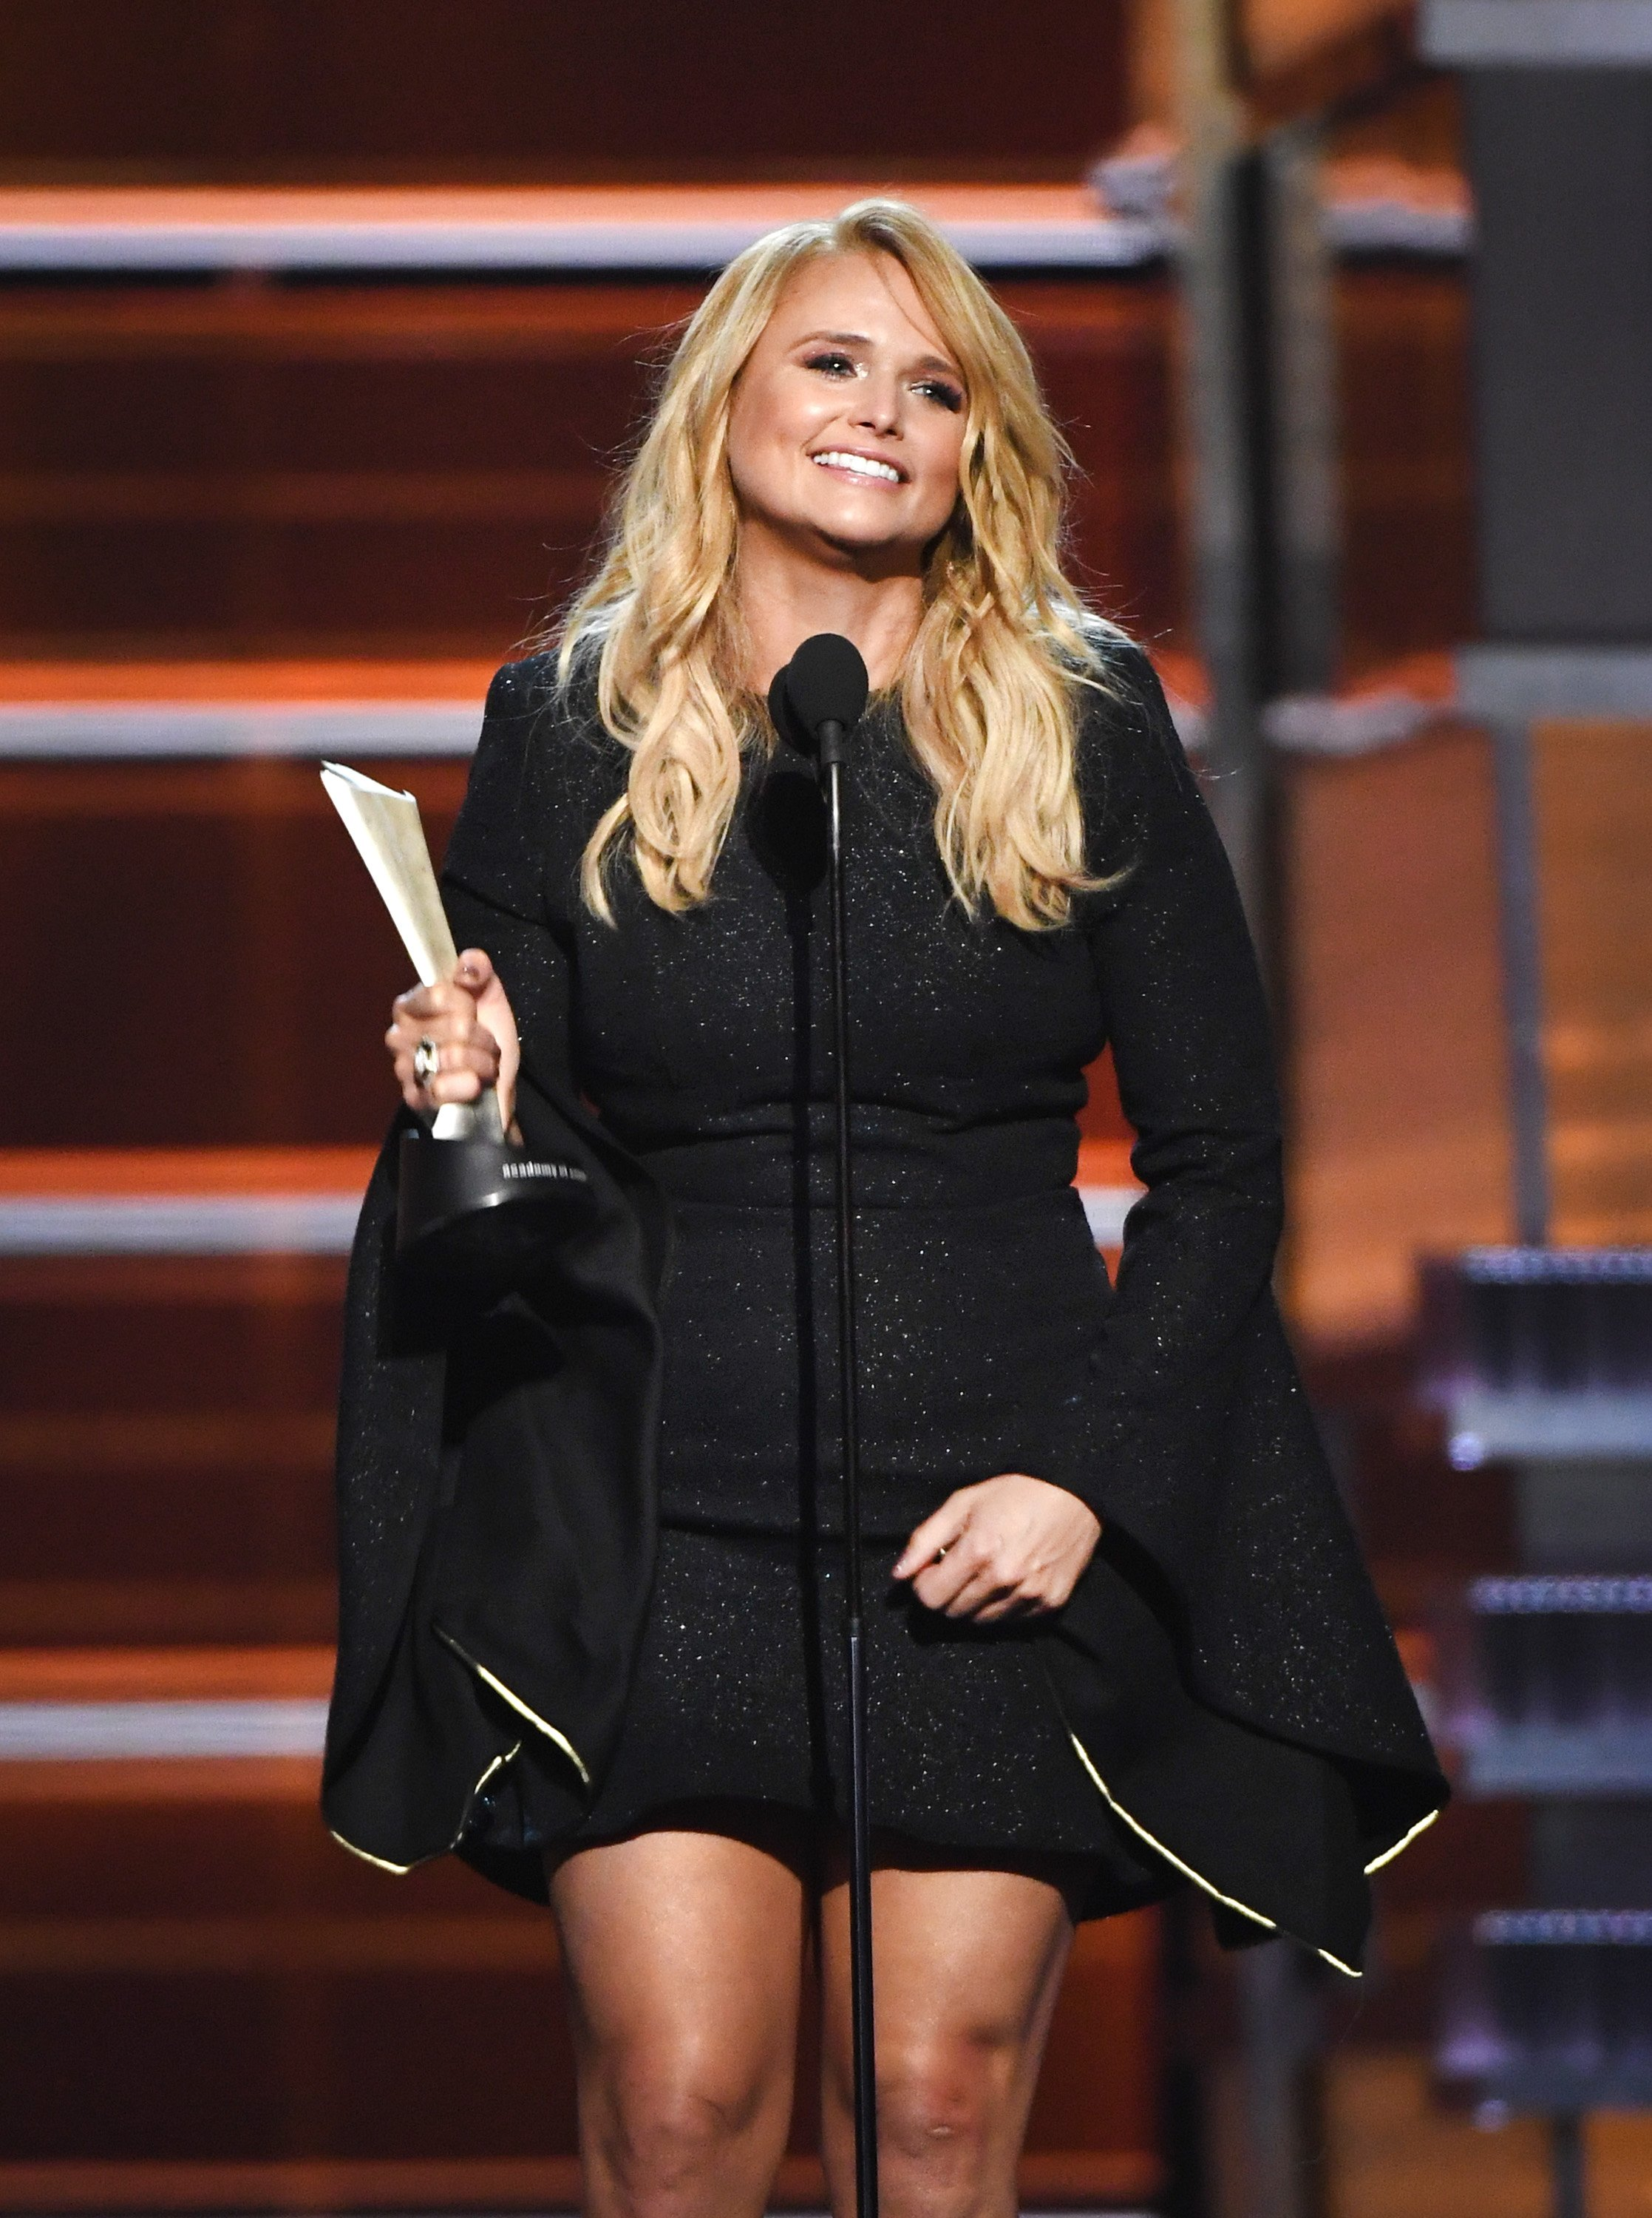 Miranda Lambert at the Academy of Country Music Awards in Las Vegas, Nevada on April 15, 2018 | Photo: Getty Images